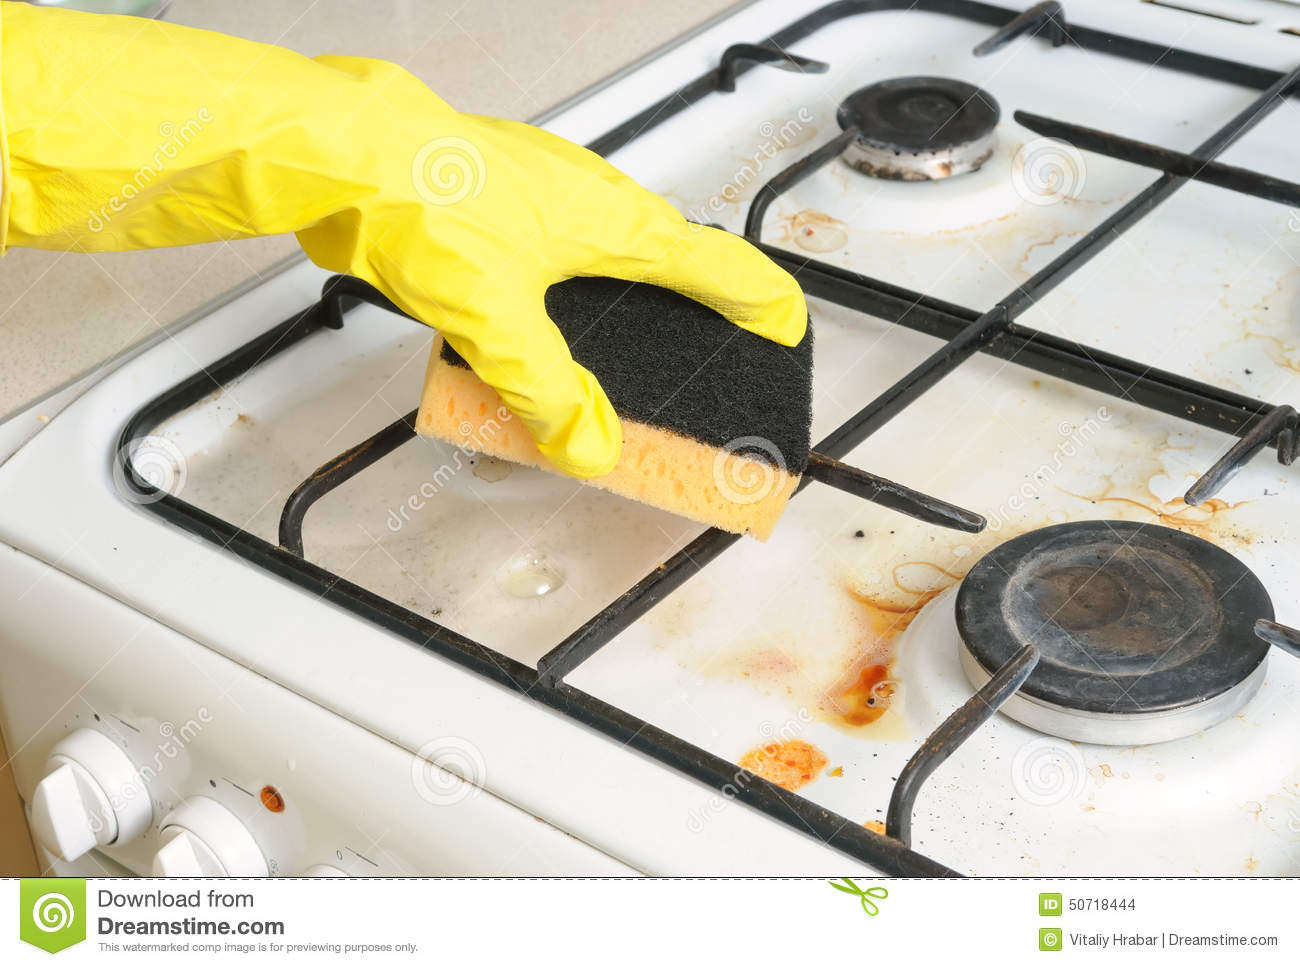 how to clean cookedon gunk from a stove top